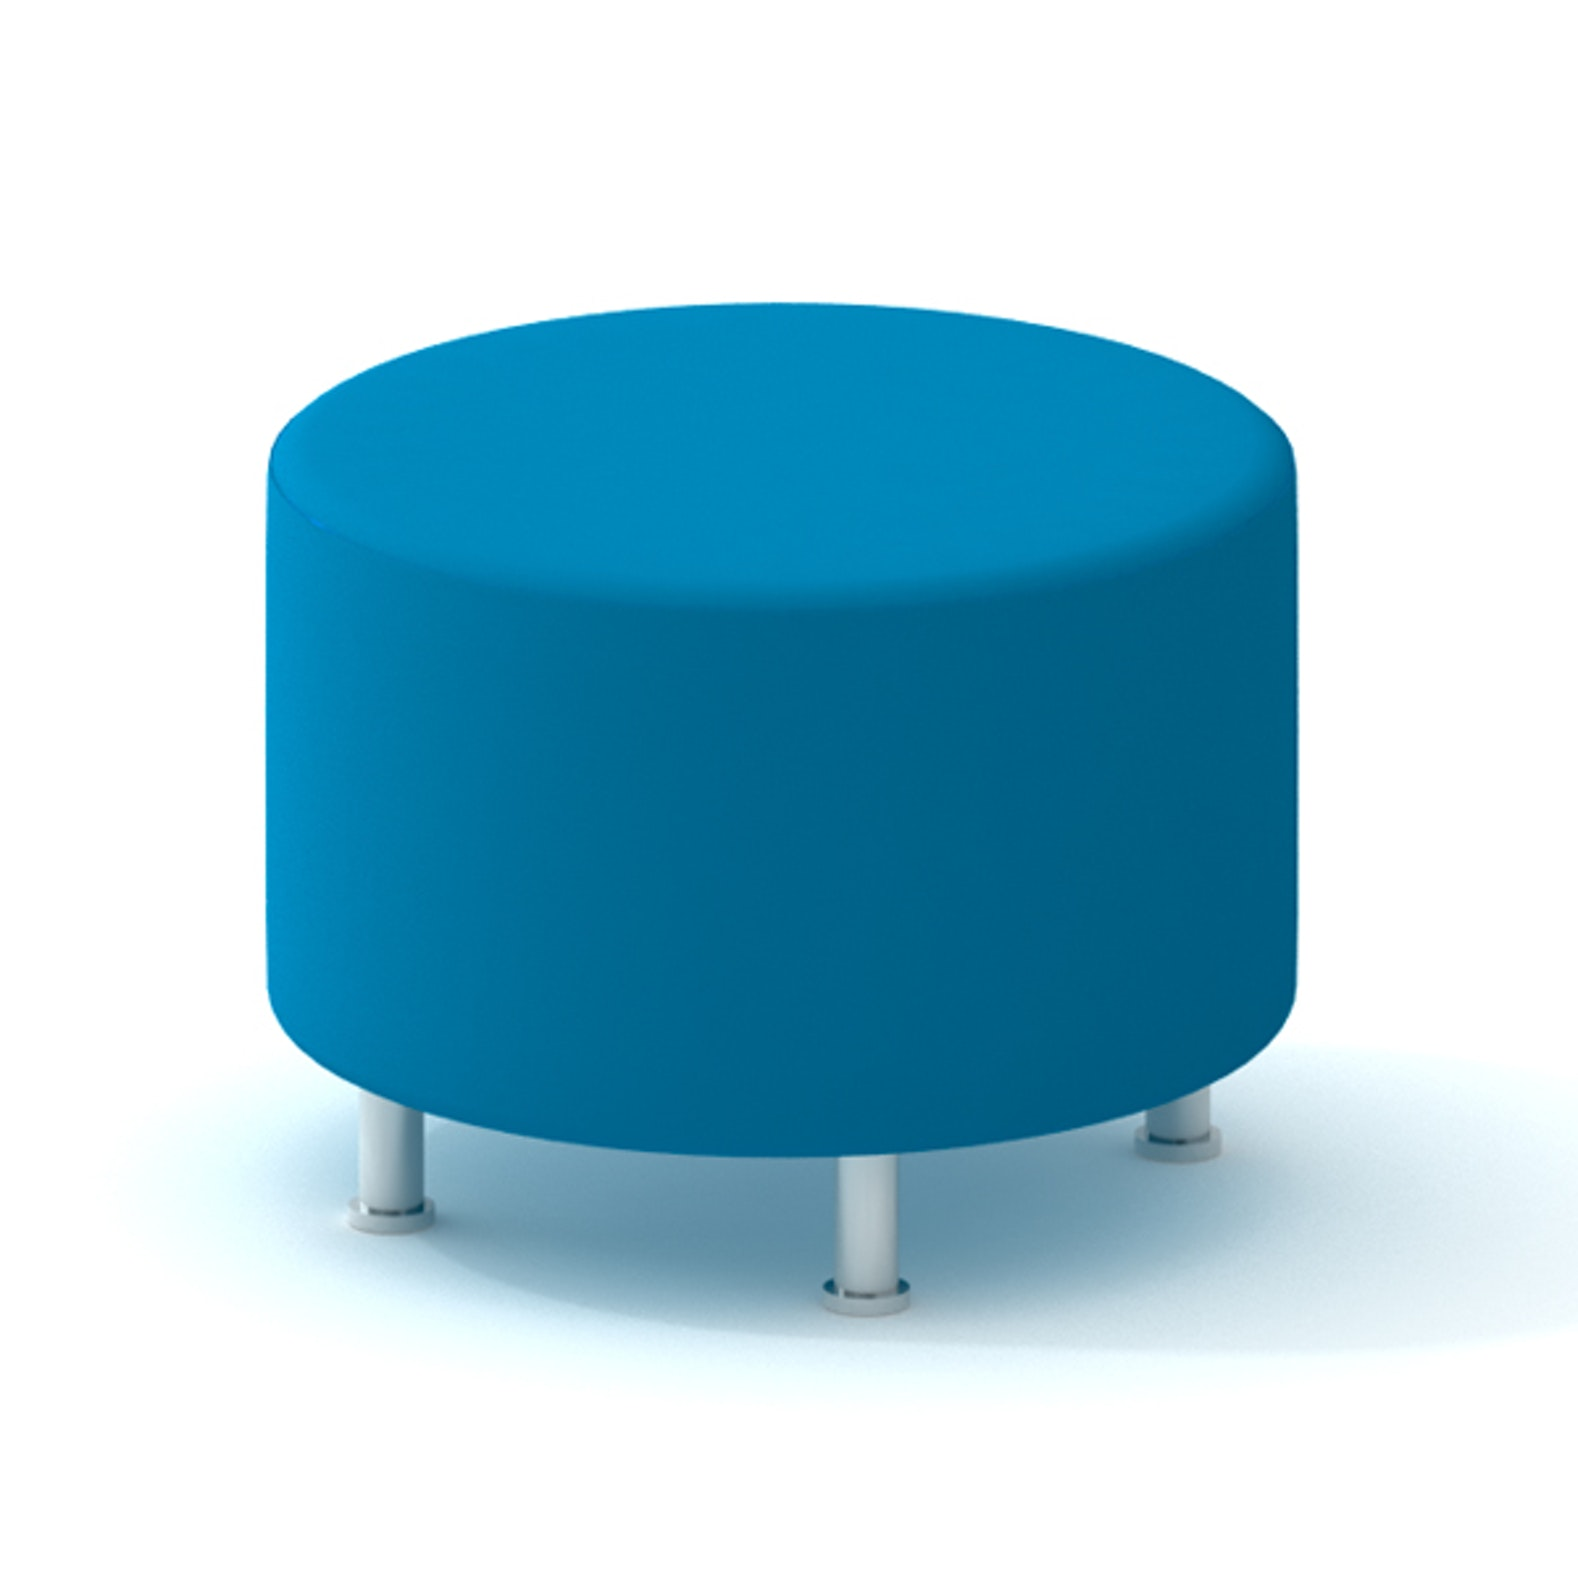 Colorful Sectionals Sofas Chairs Ottomans Benches Poppin